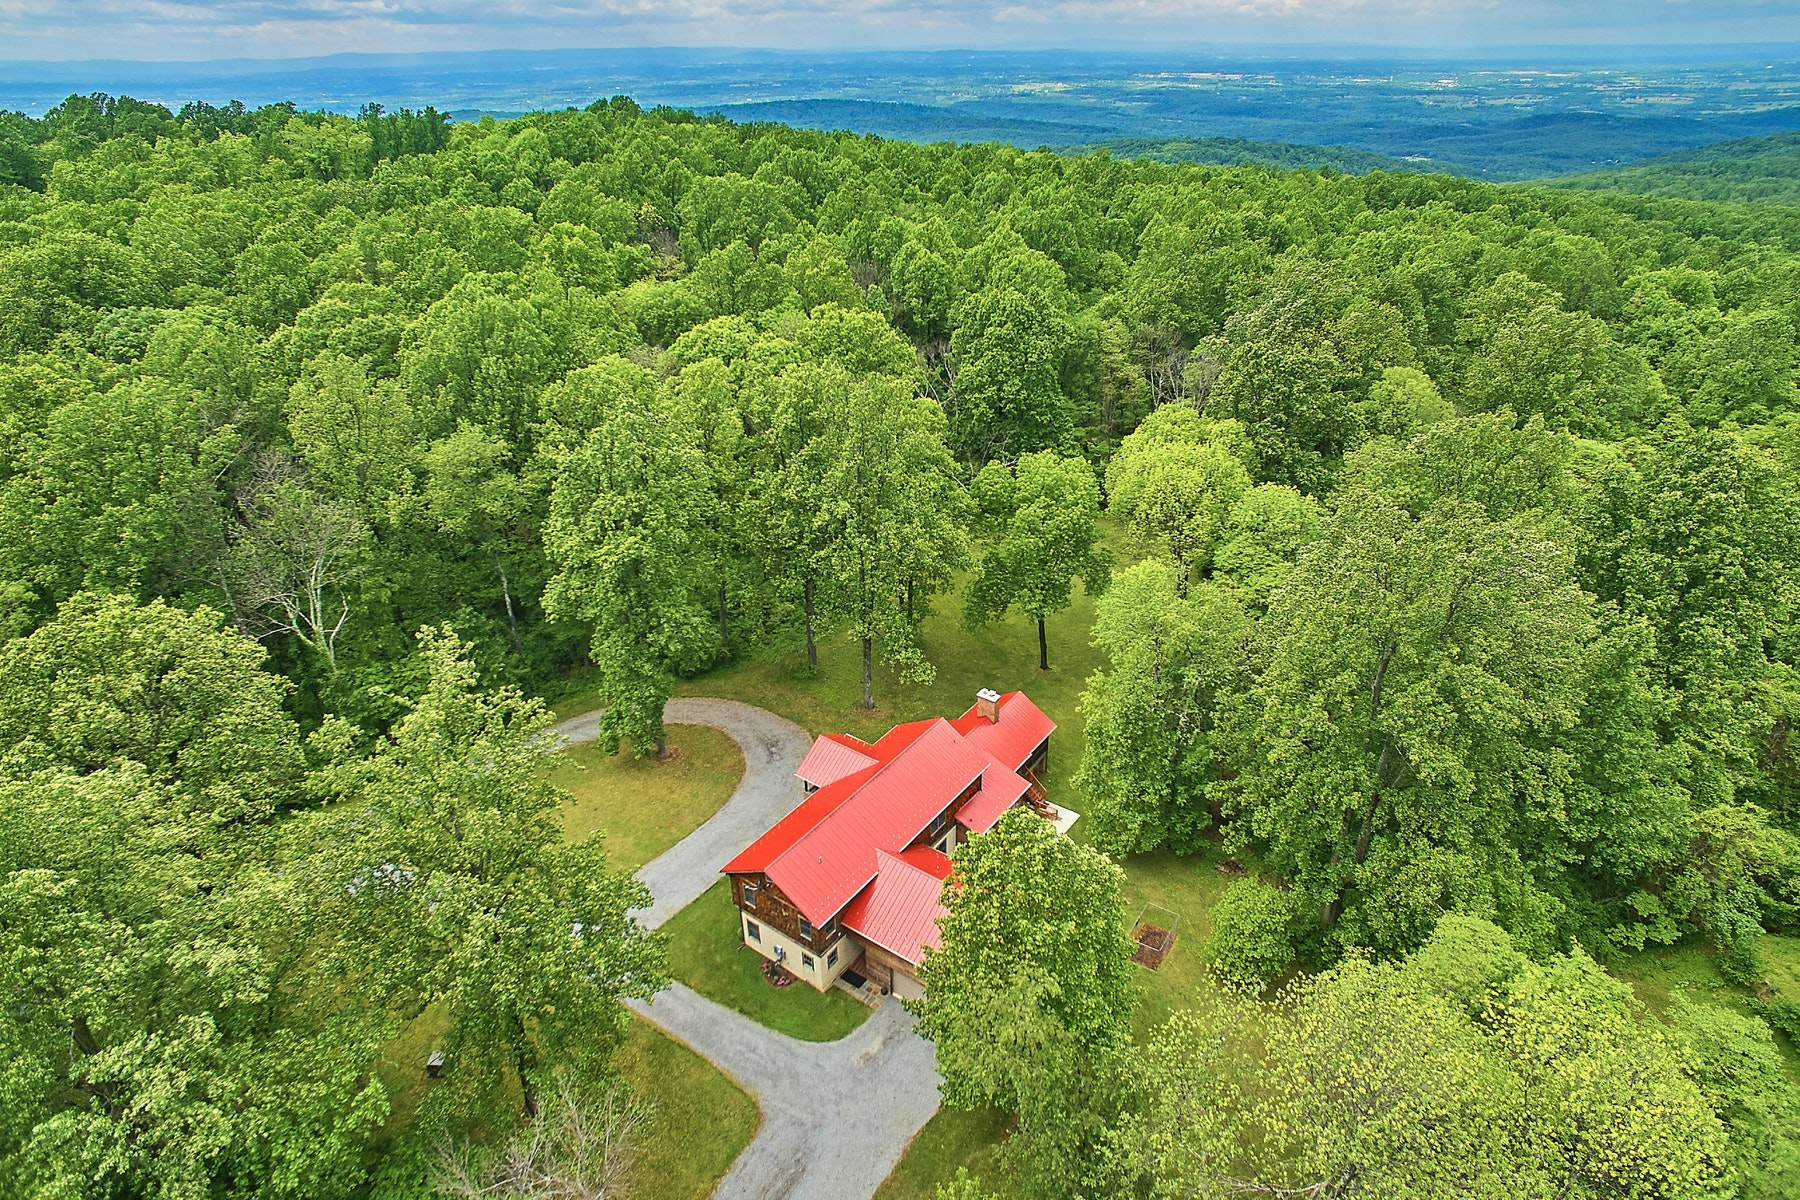 Single Family Home for Sale at 20769 Blueridge Mountain Road, Paris, VA 20130 20769 Blueridge Mountain Rd Paris, Virginia, 20130 United States